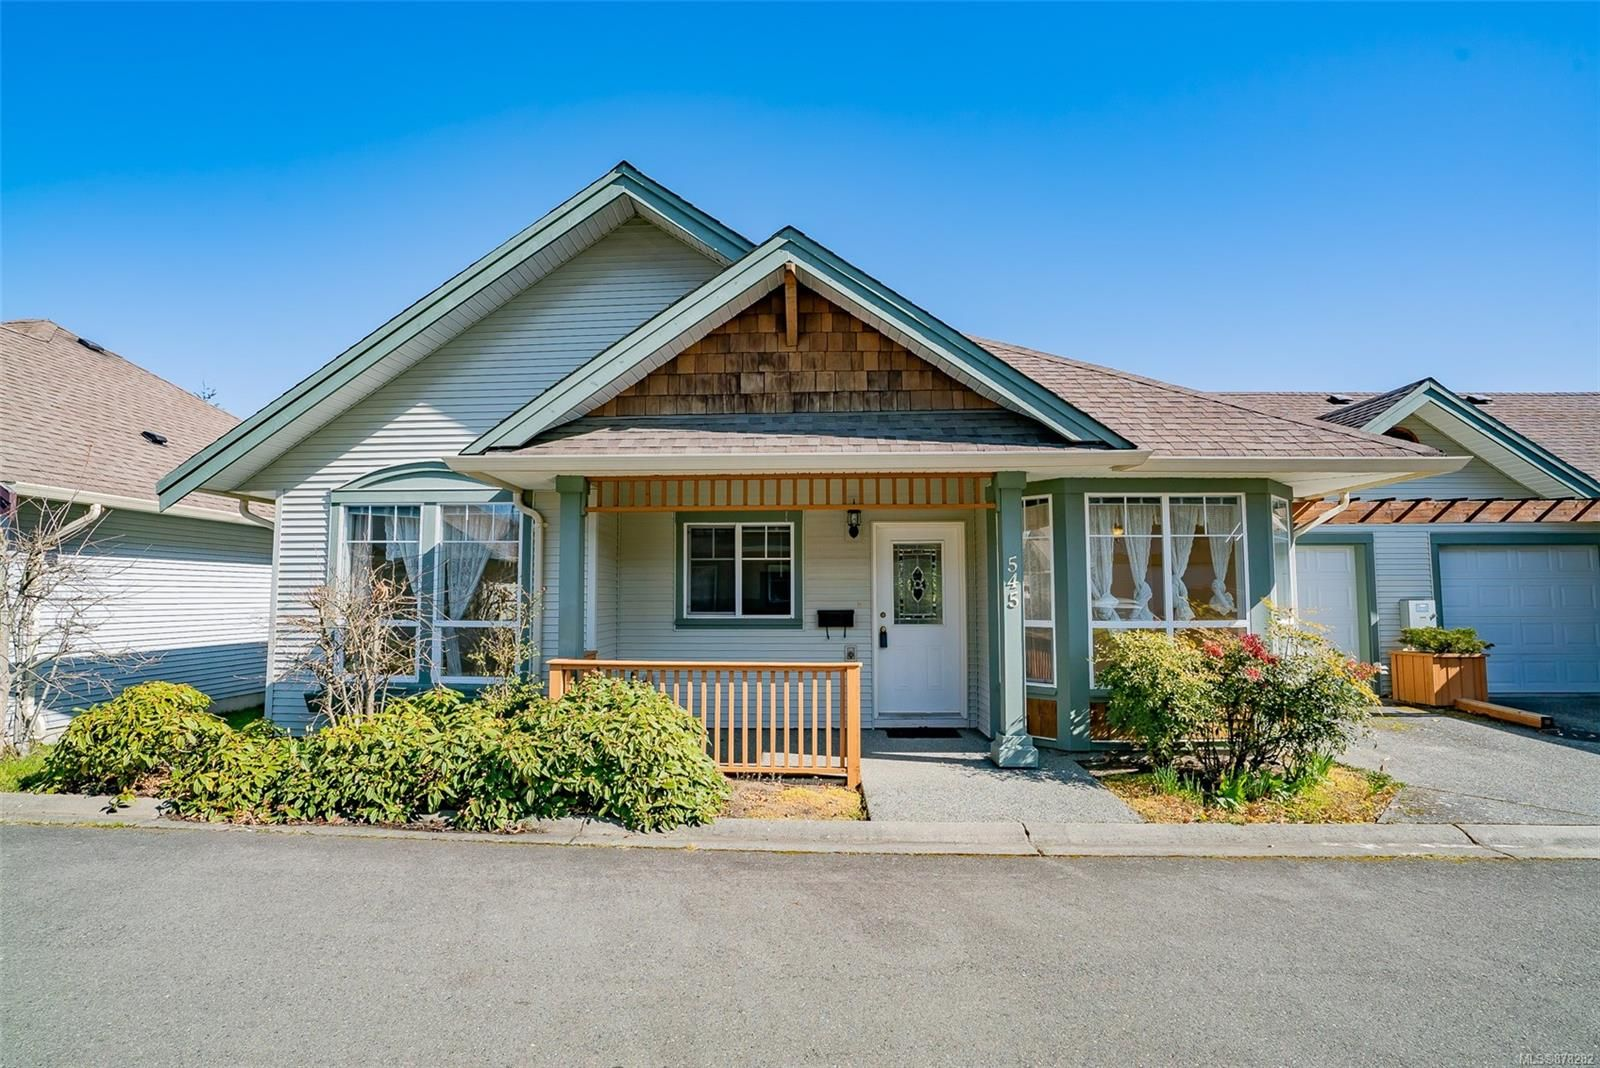 Main Photo: 545 Asteria Pl in : Na Old City Row/Townhouse for sale (Nanaimo)  : MLS®# 878282